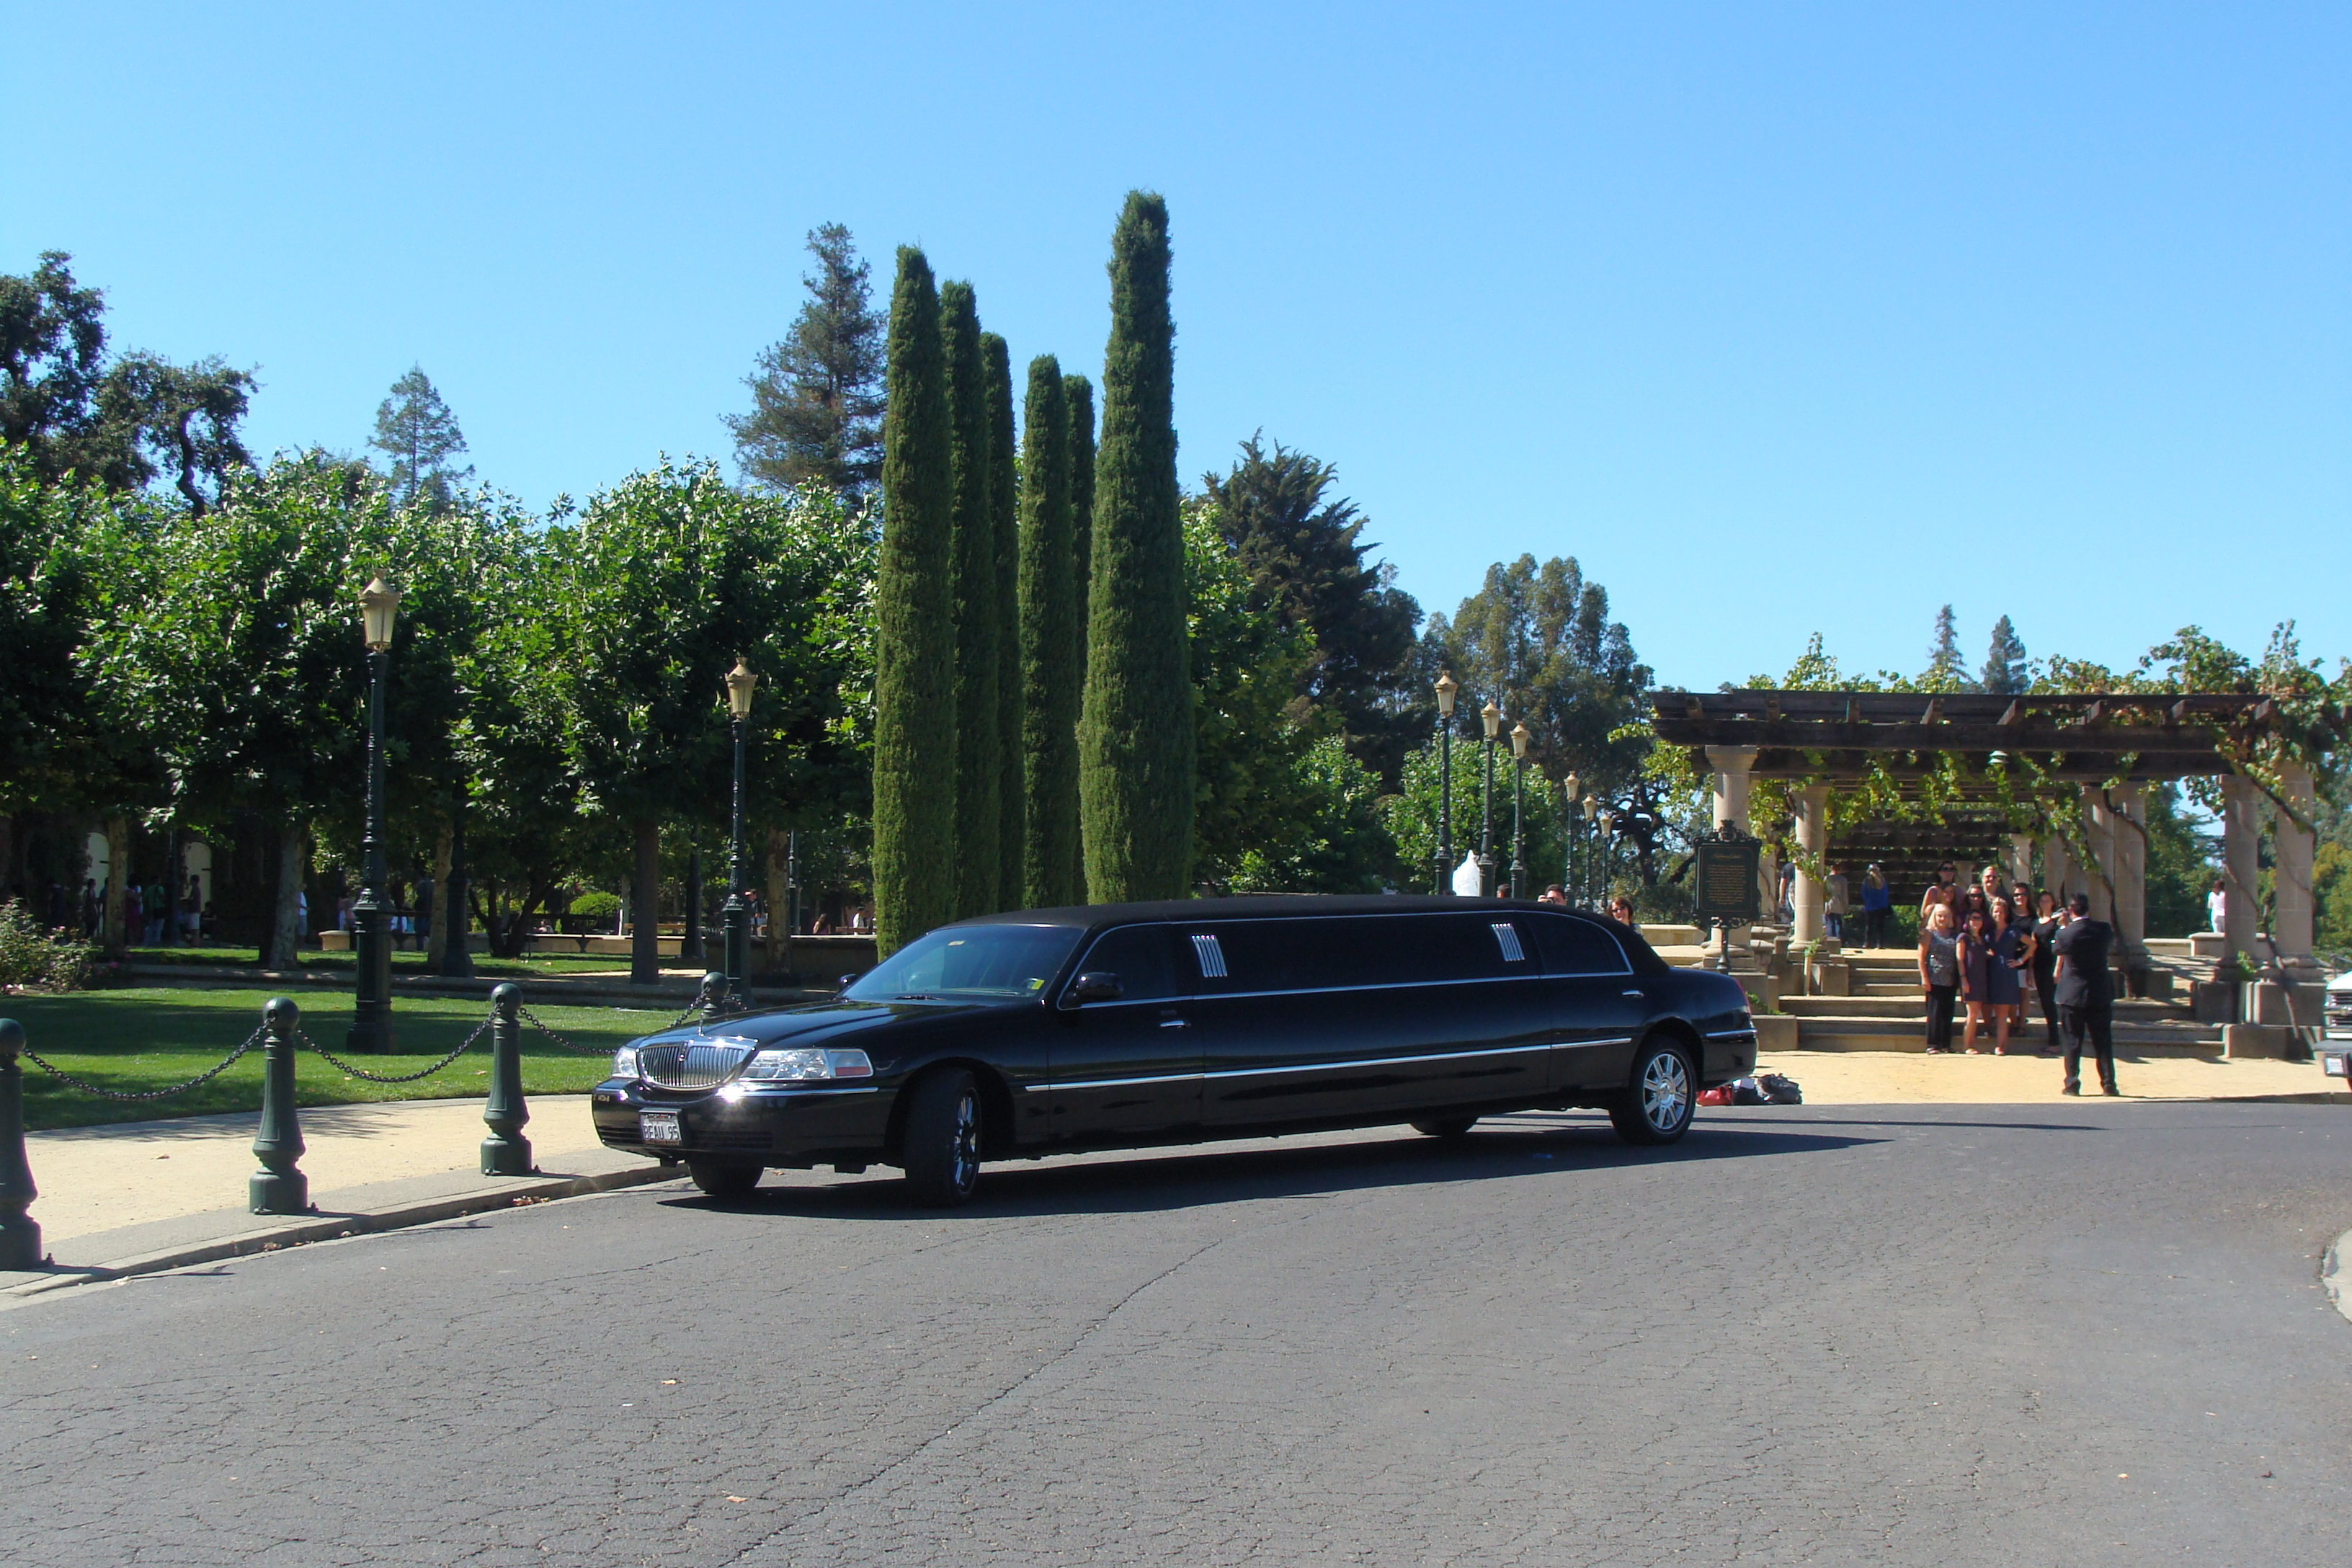 A luxurious limo waiting for carefree wine tourists